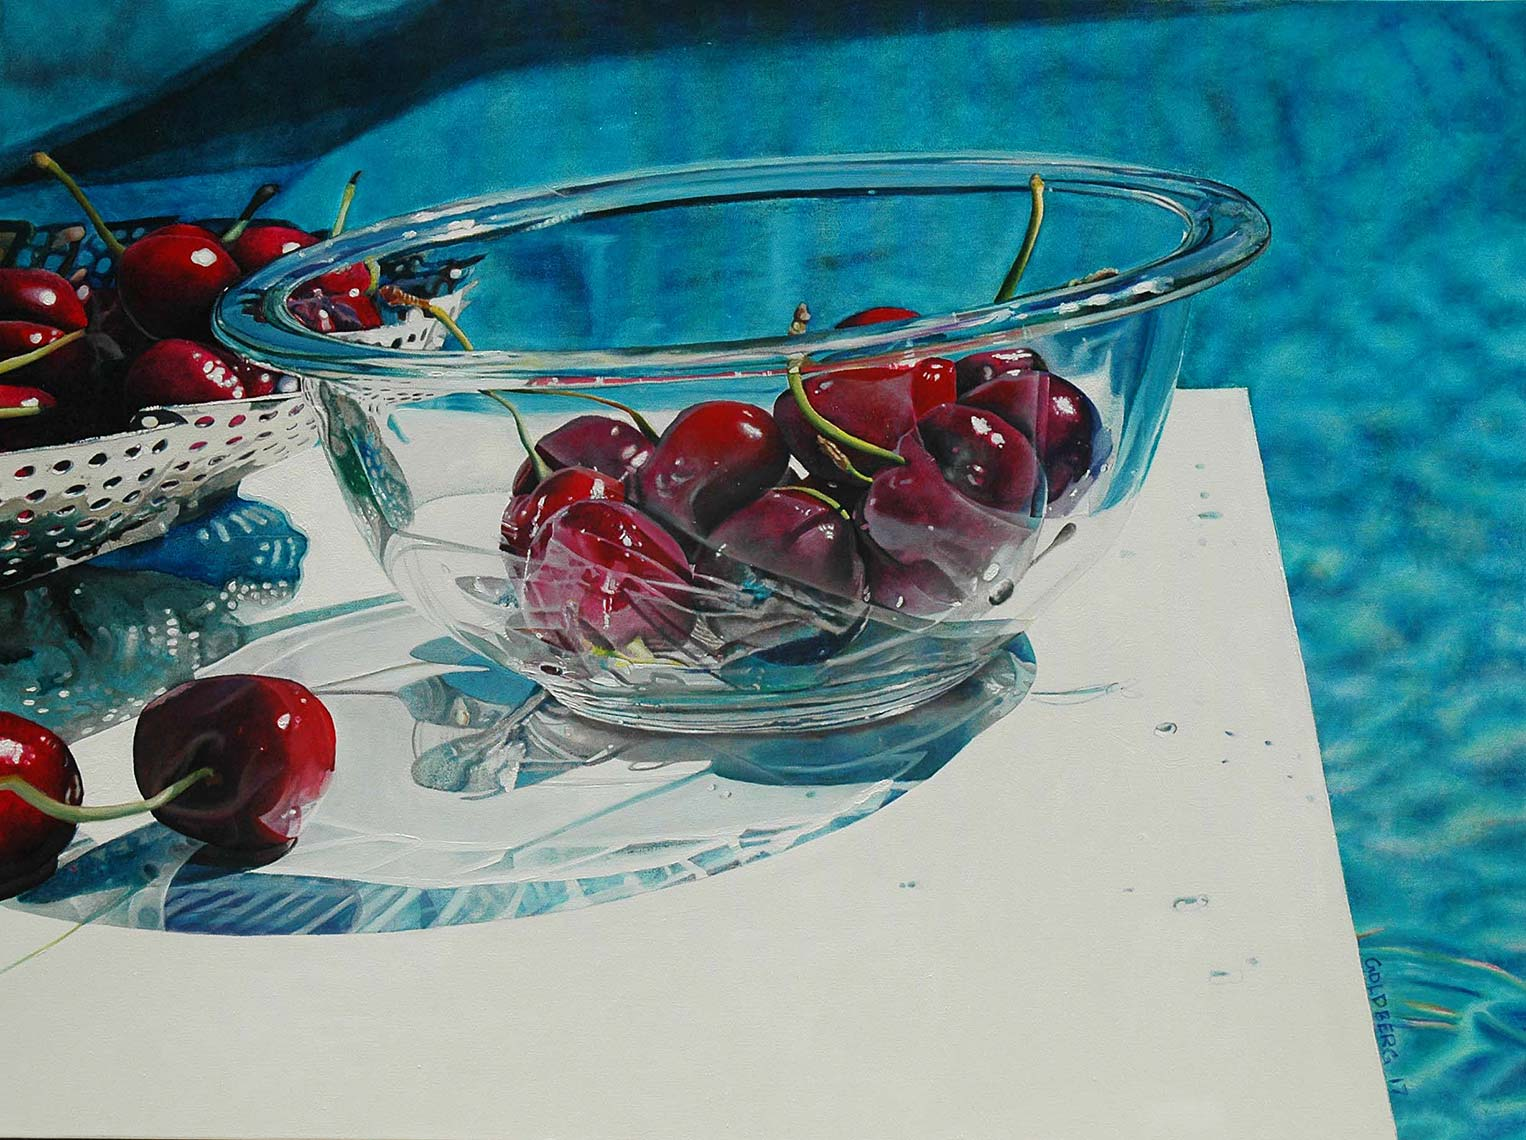 Cherries-by-the-Pool-36x48-Oil-on-Canvas